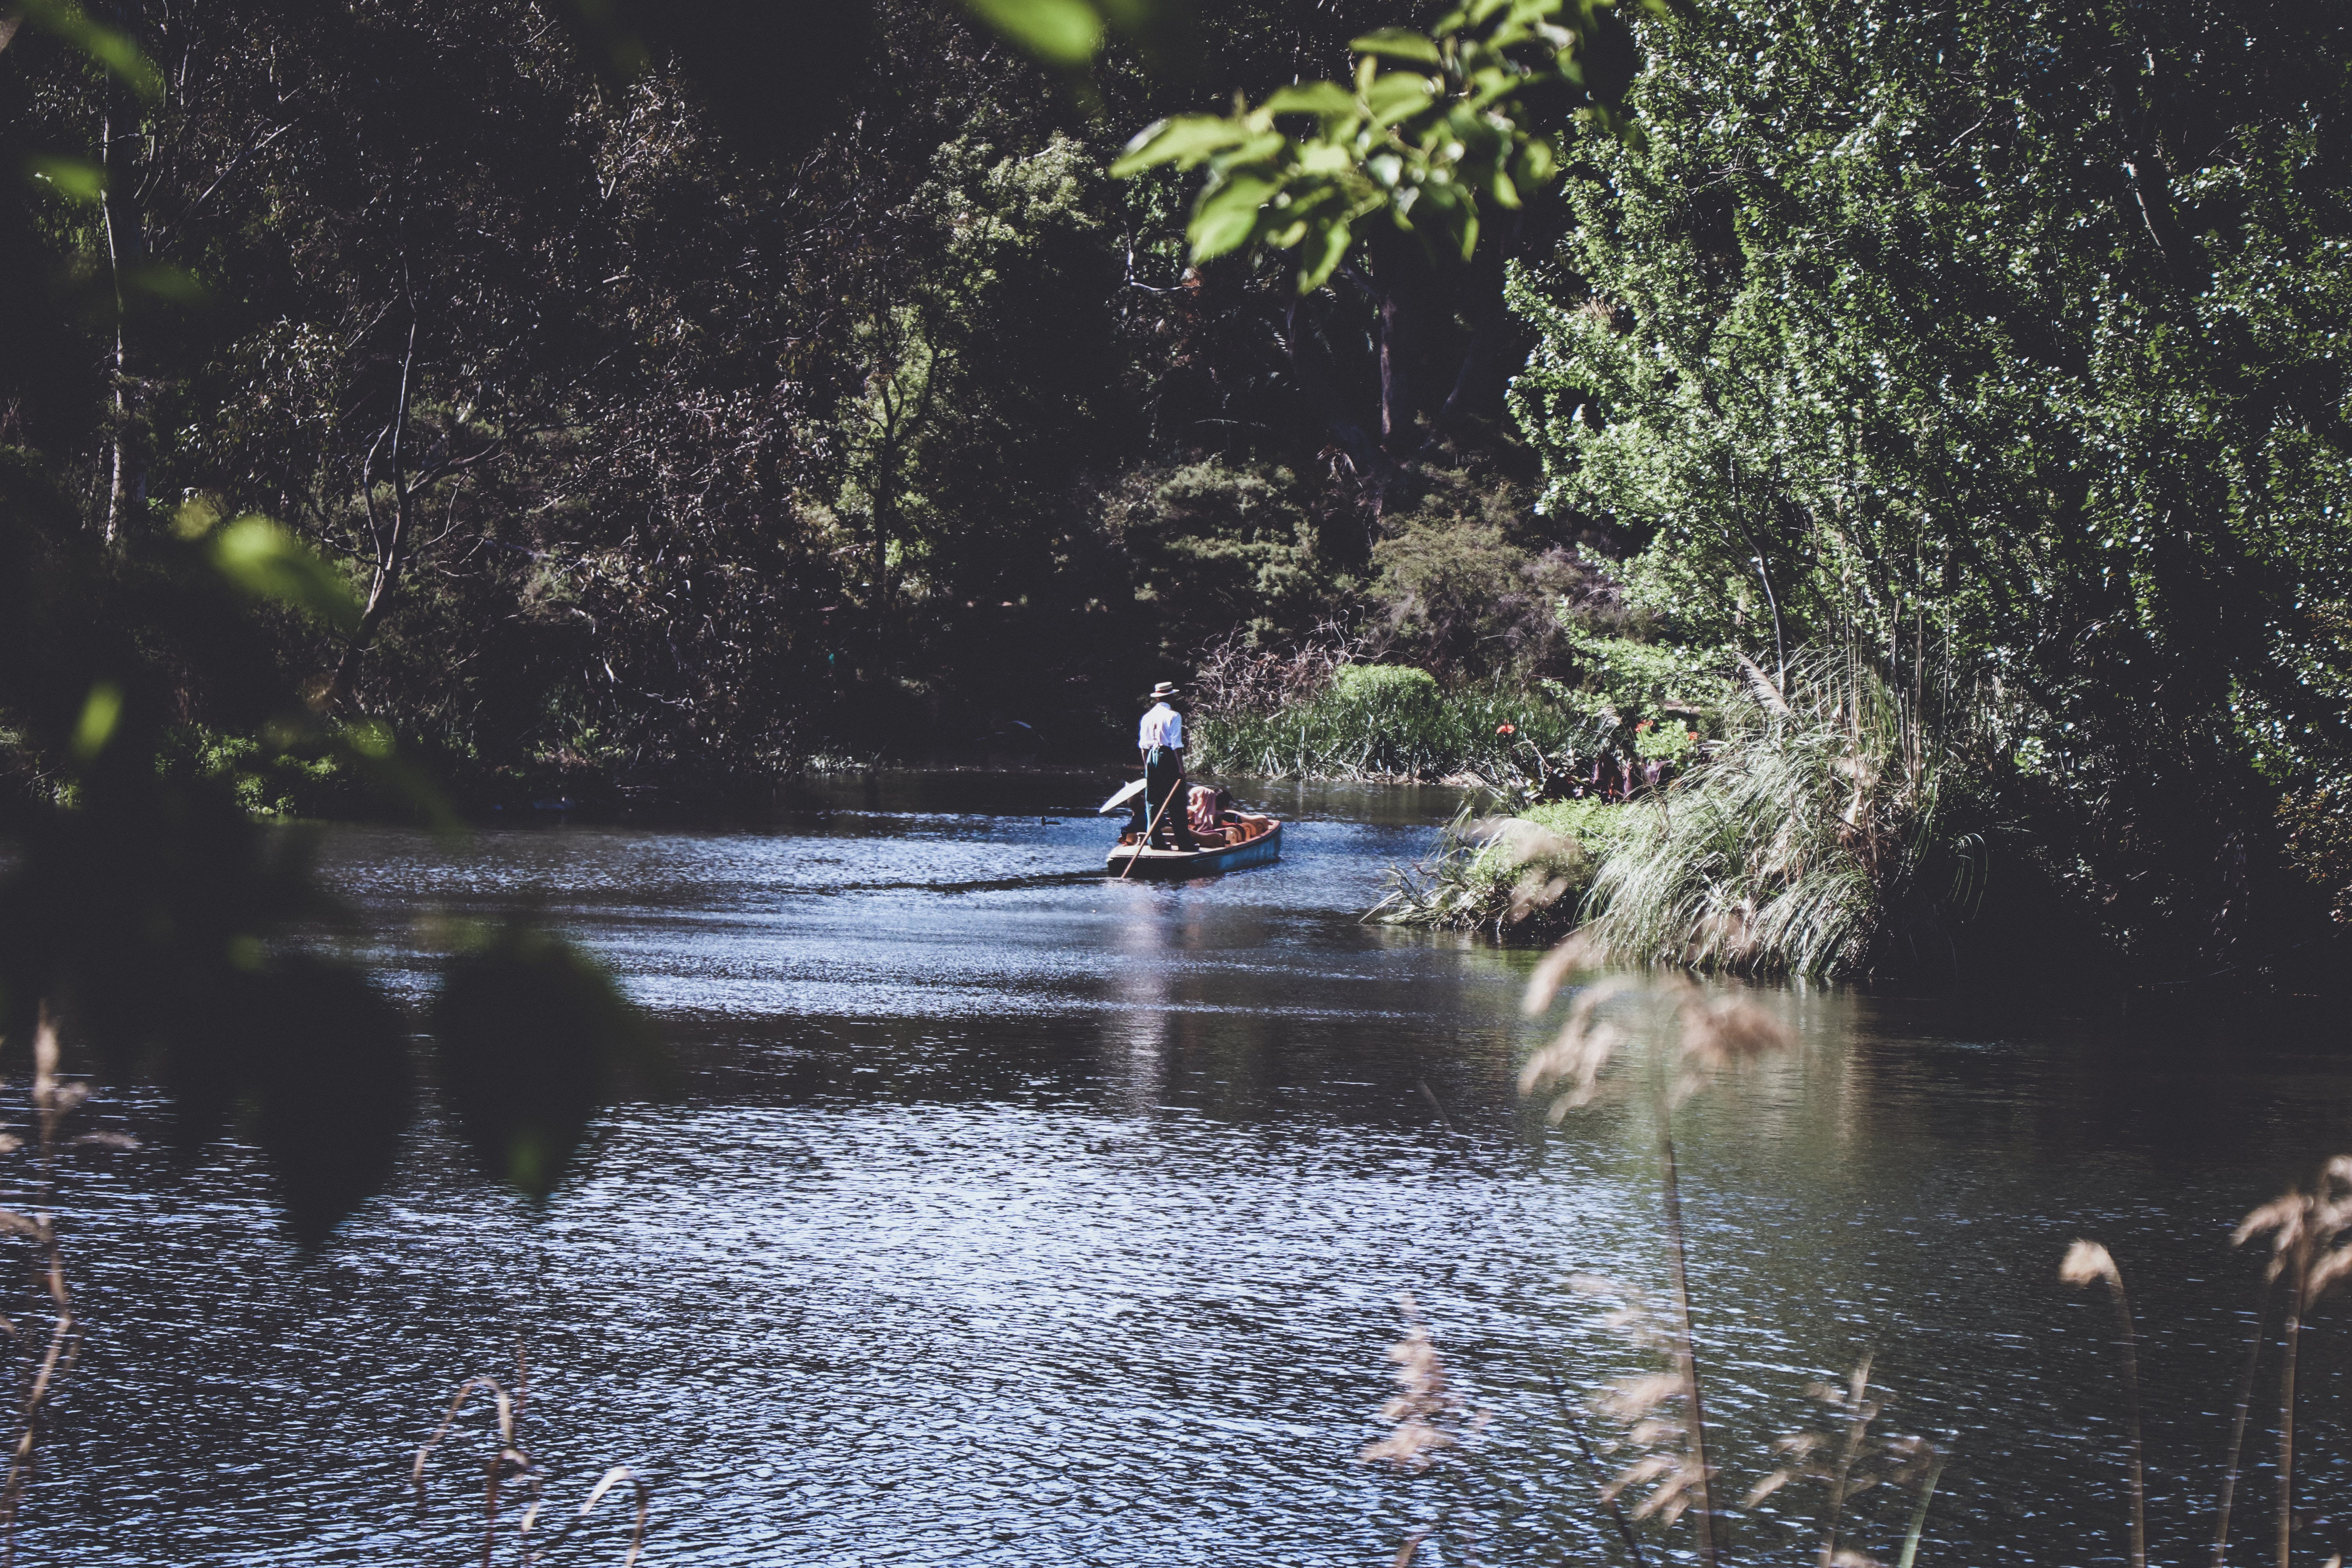 Person on Canoe Surrounded by Trees